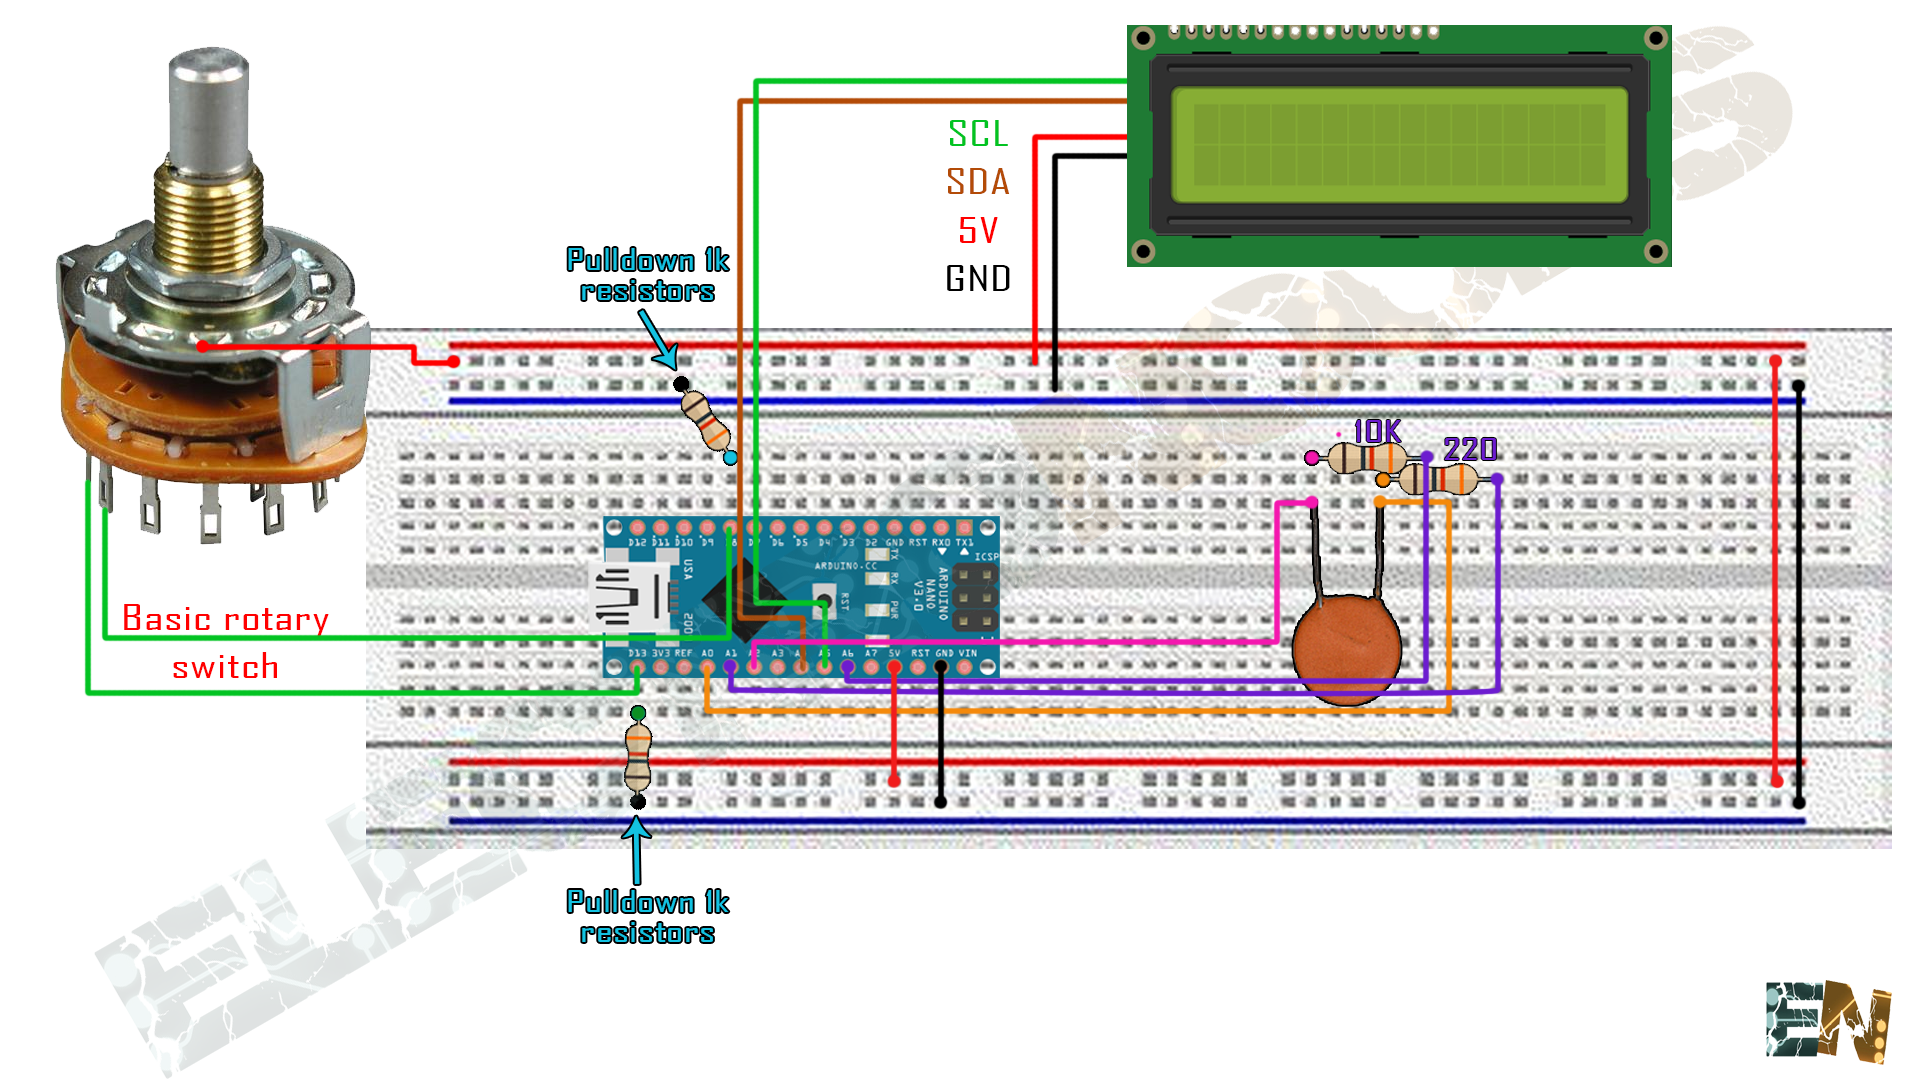 How To Make A Capacitance Meter Using Arduino Capacitor Charging And Discharging Circuit So For The High Values Range We Will Use Pins A1 Violet A6violet Charge Discharge Analog Pin A0orange Measure